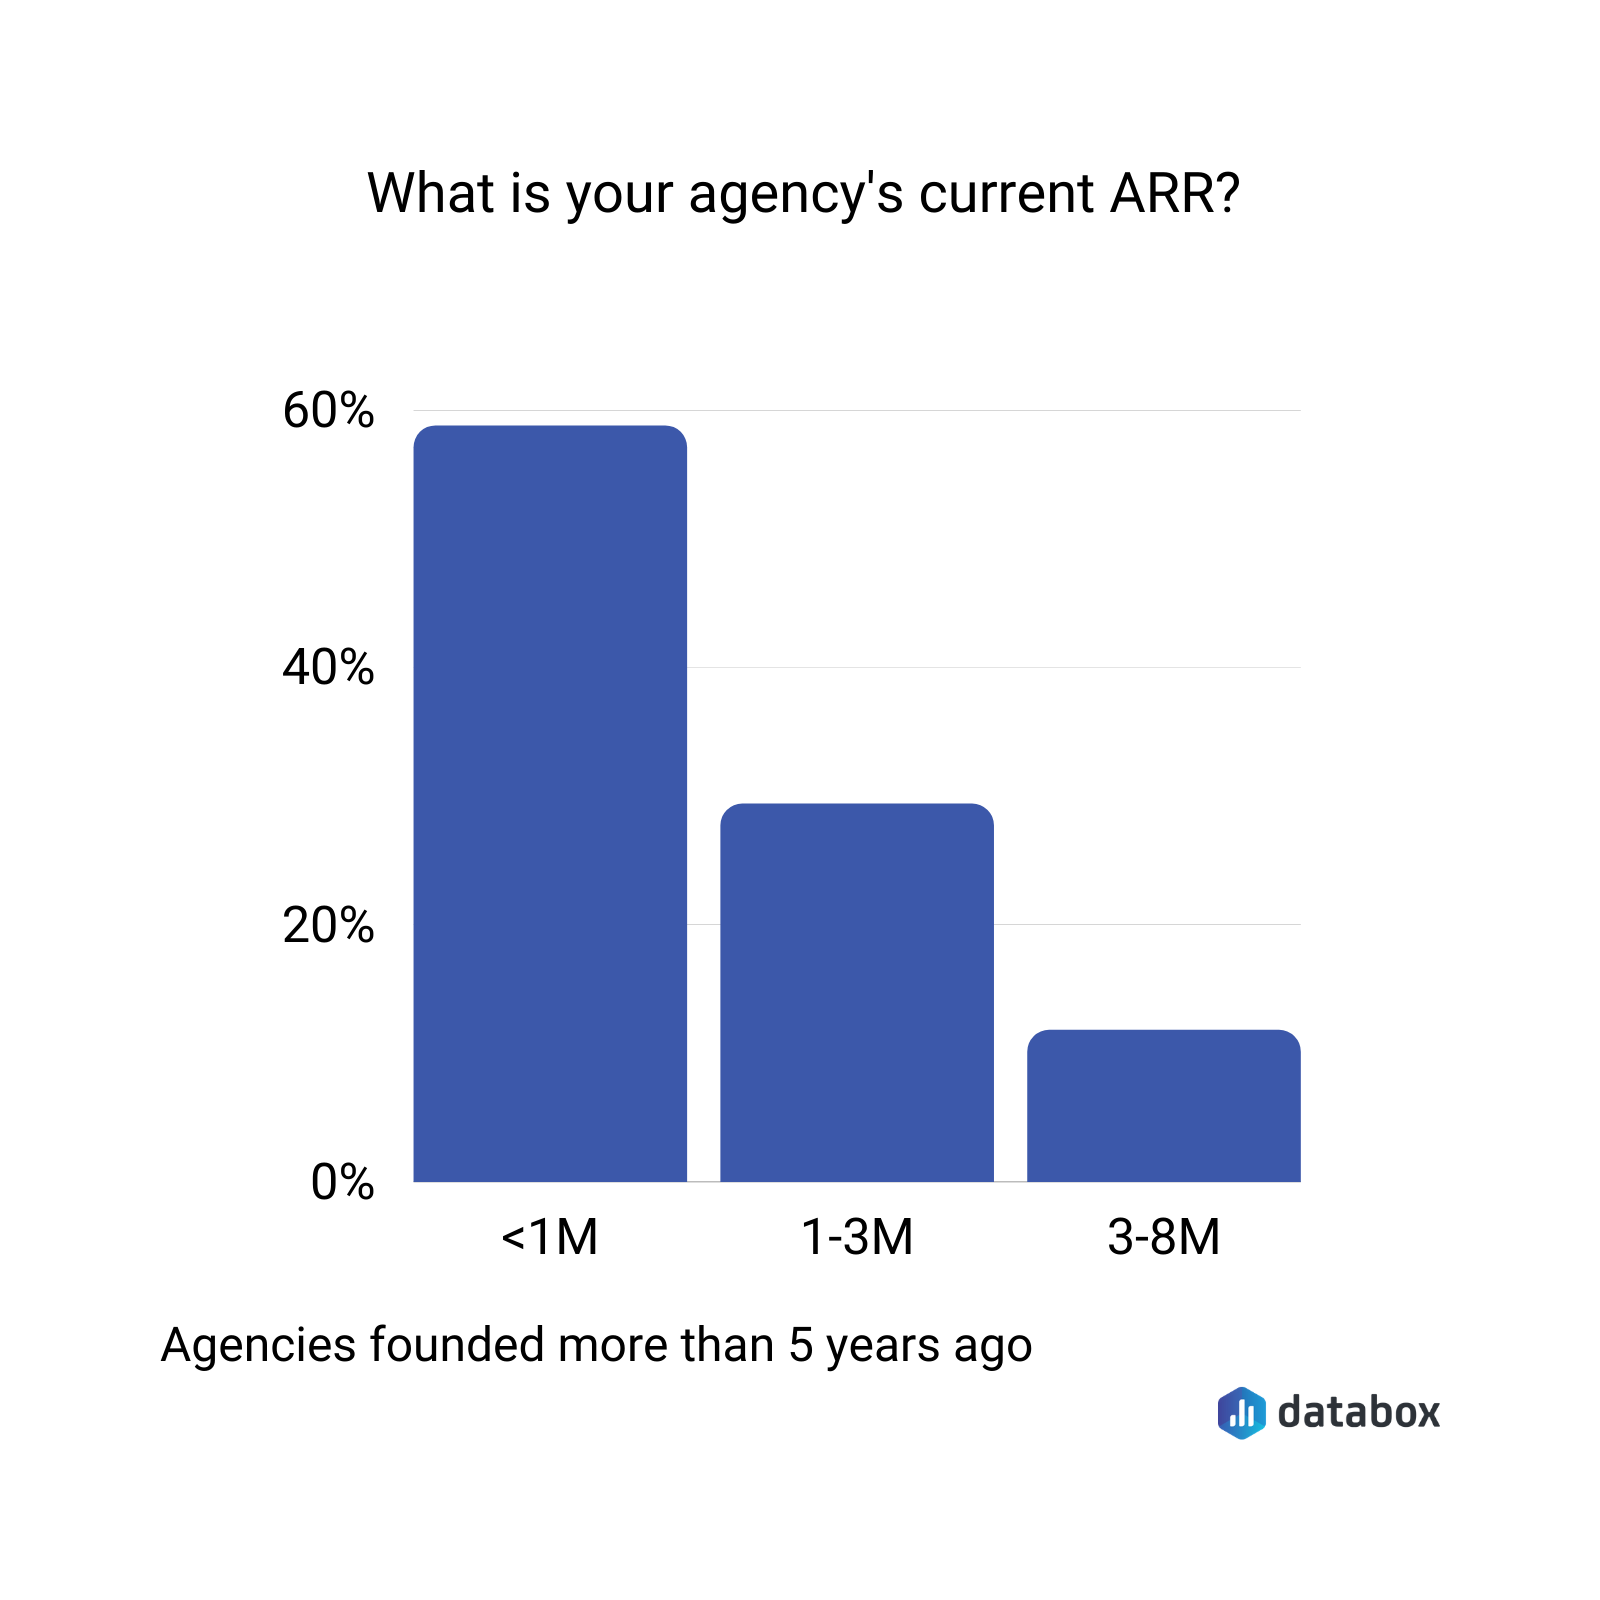 What is your agency's current ARR?